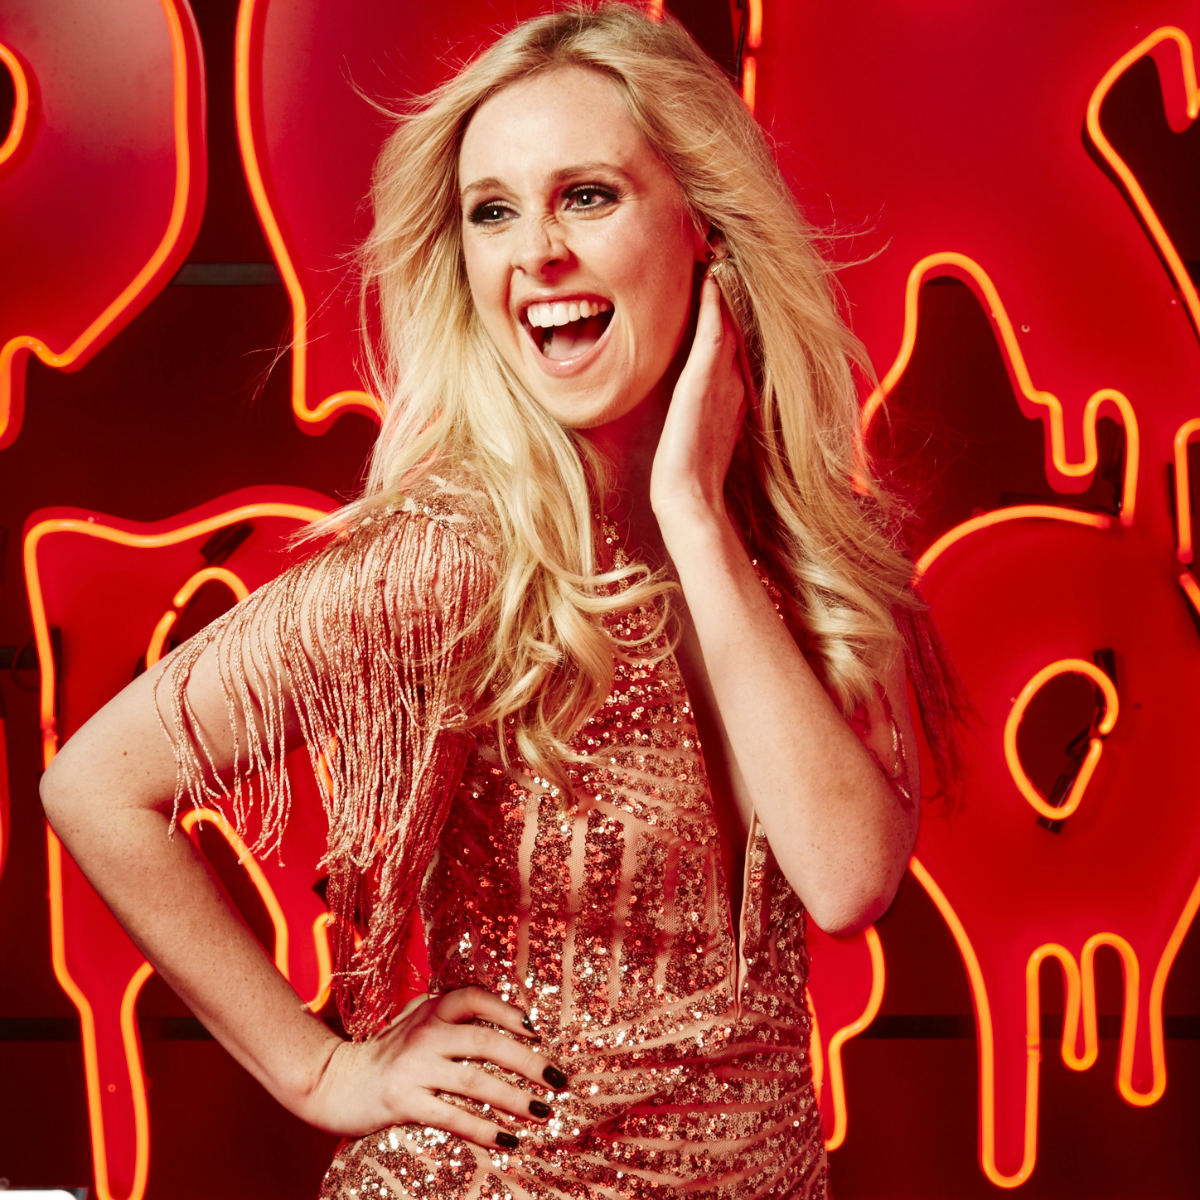 DIANA VICKERS EXTENDS UNTIL 27 AUGUST 2016